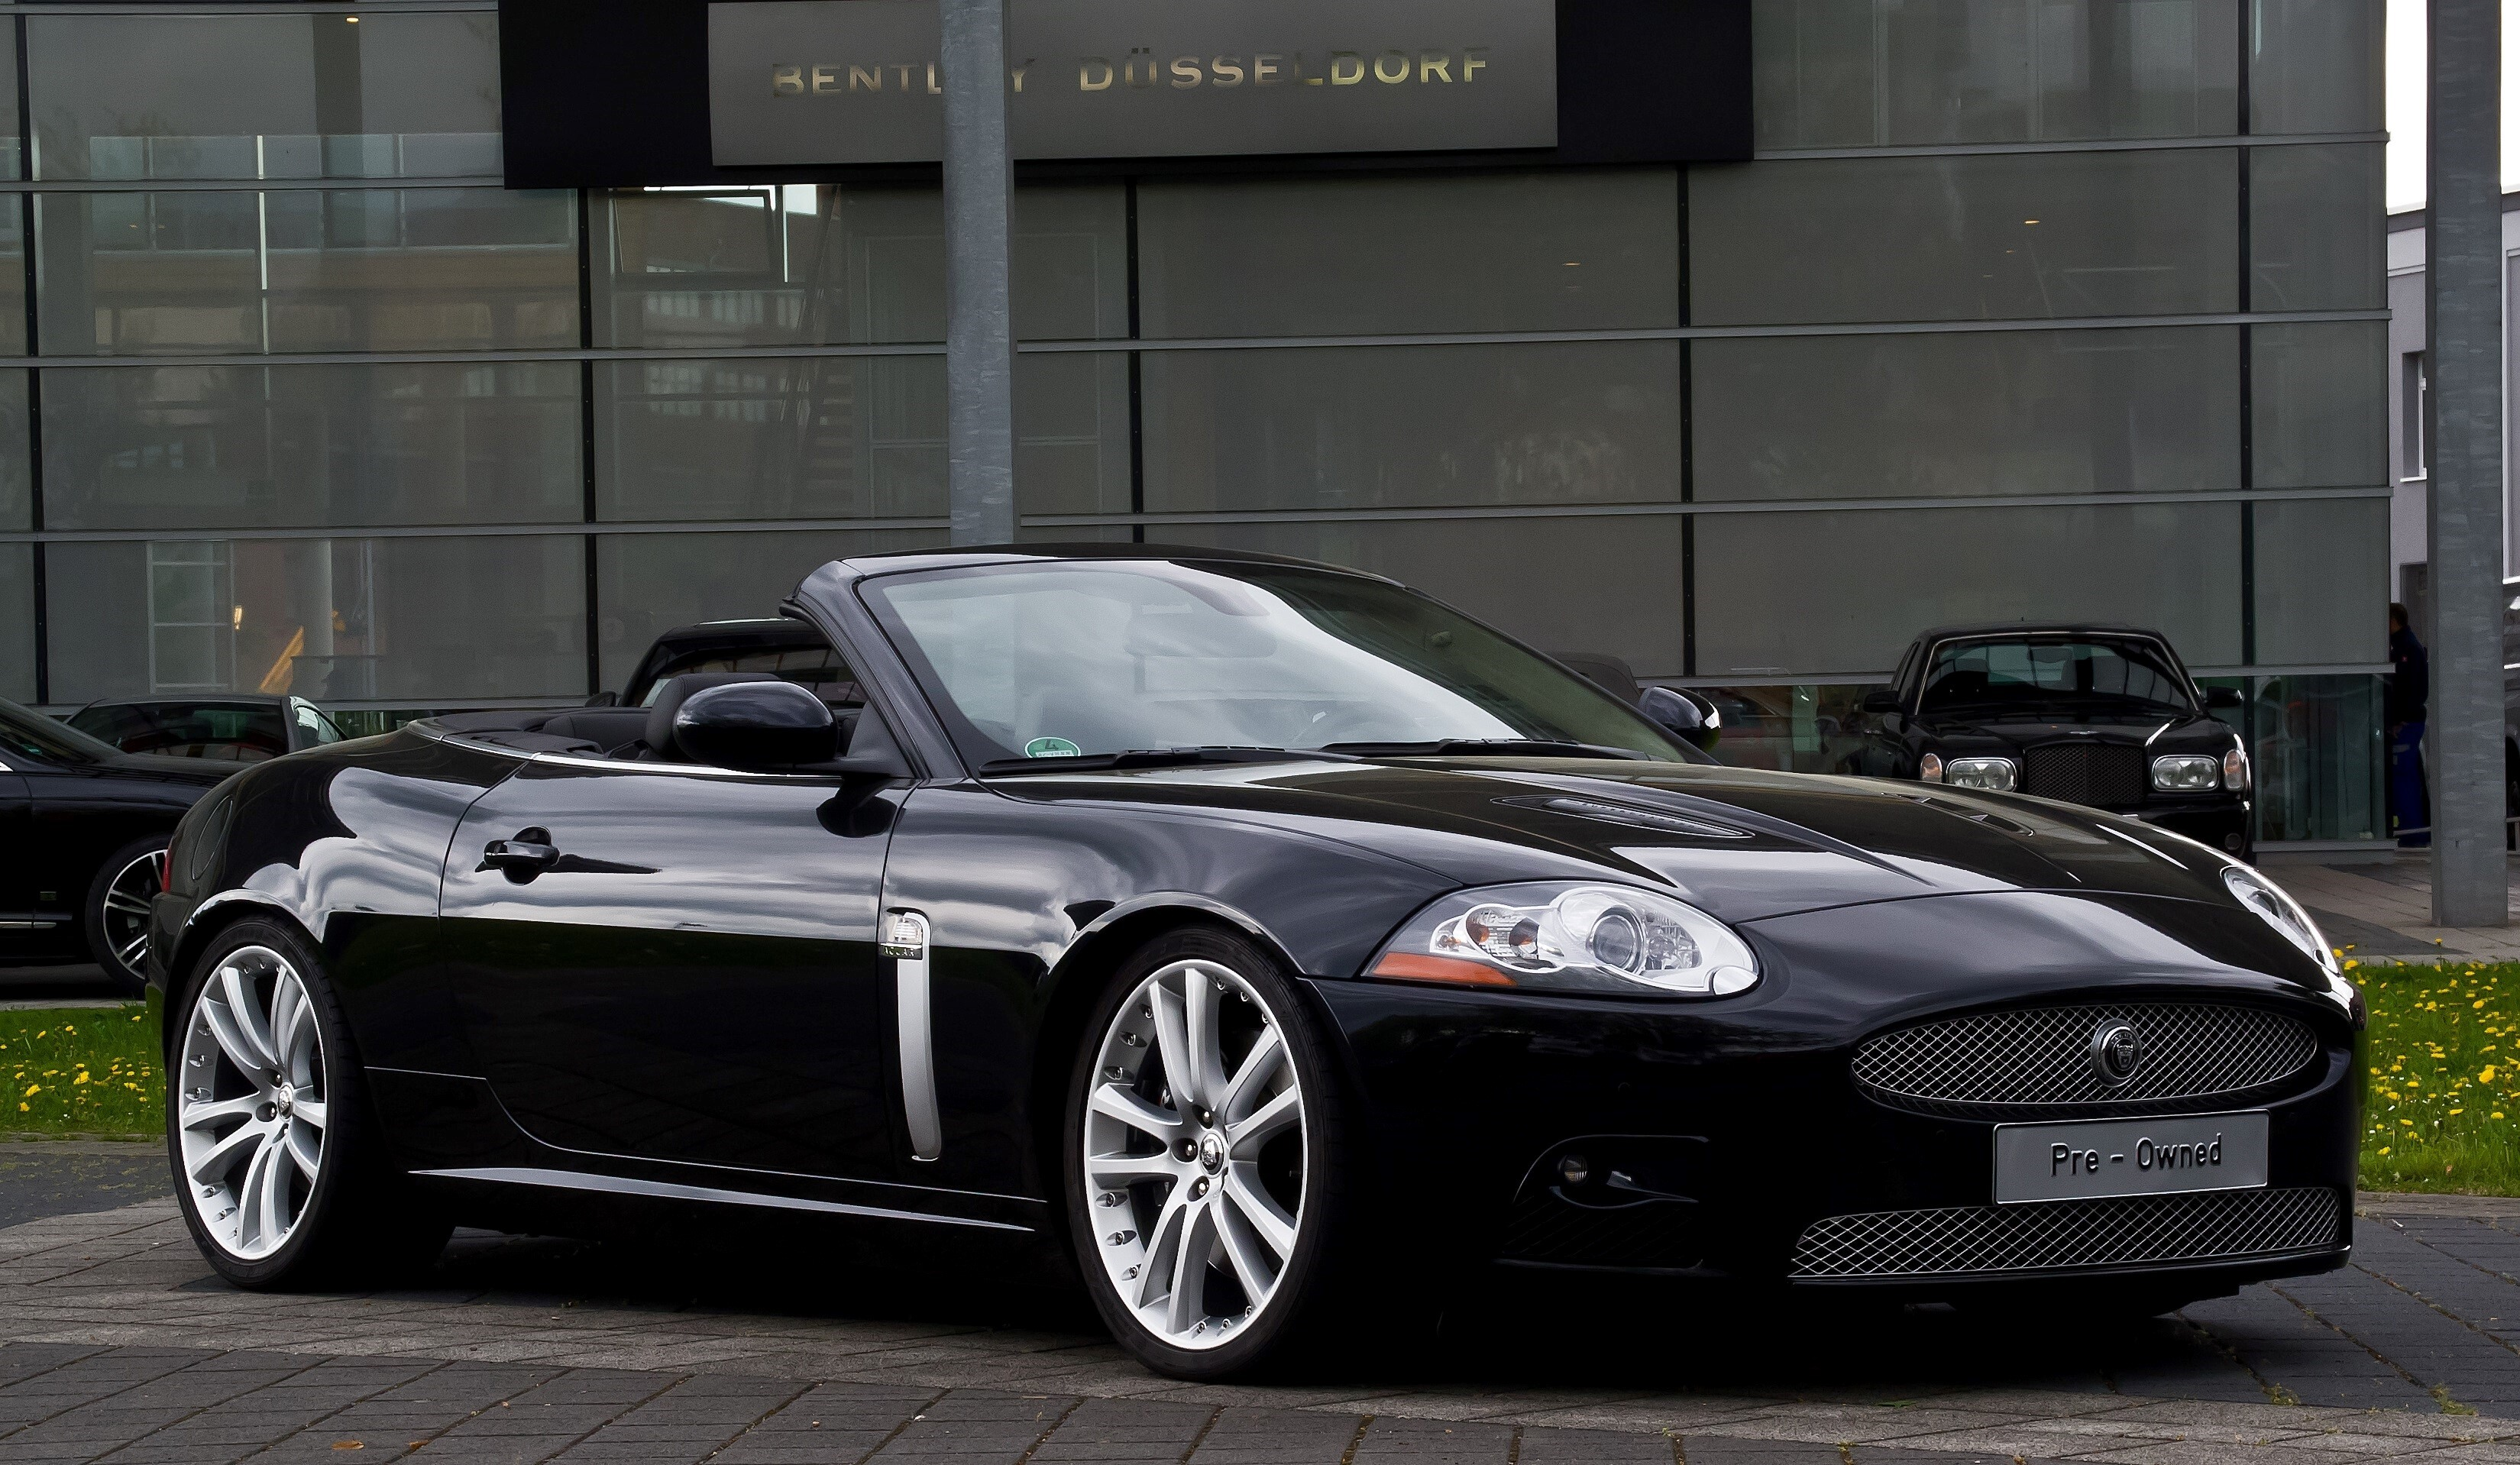 Black Jaguar Cars Images Black Cabriolet Jaguar